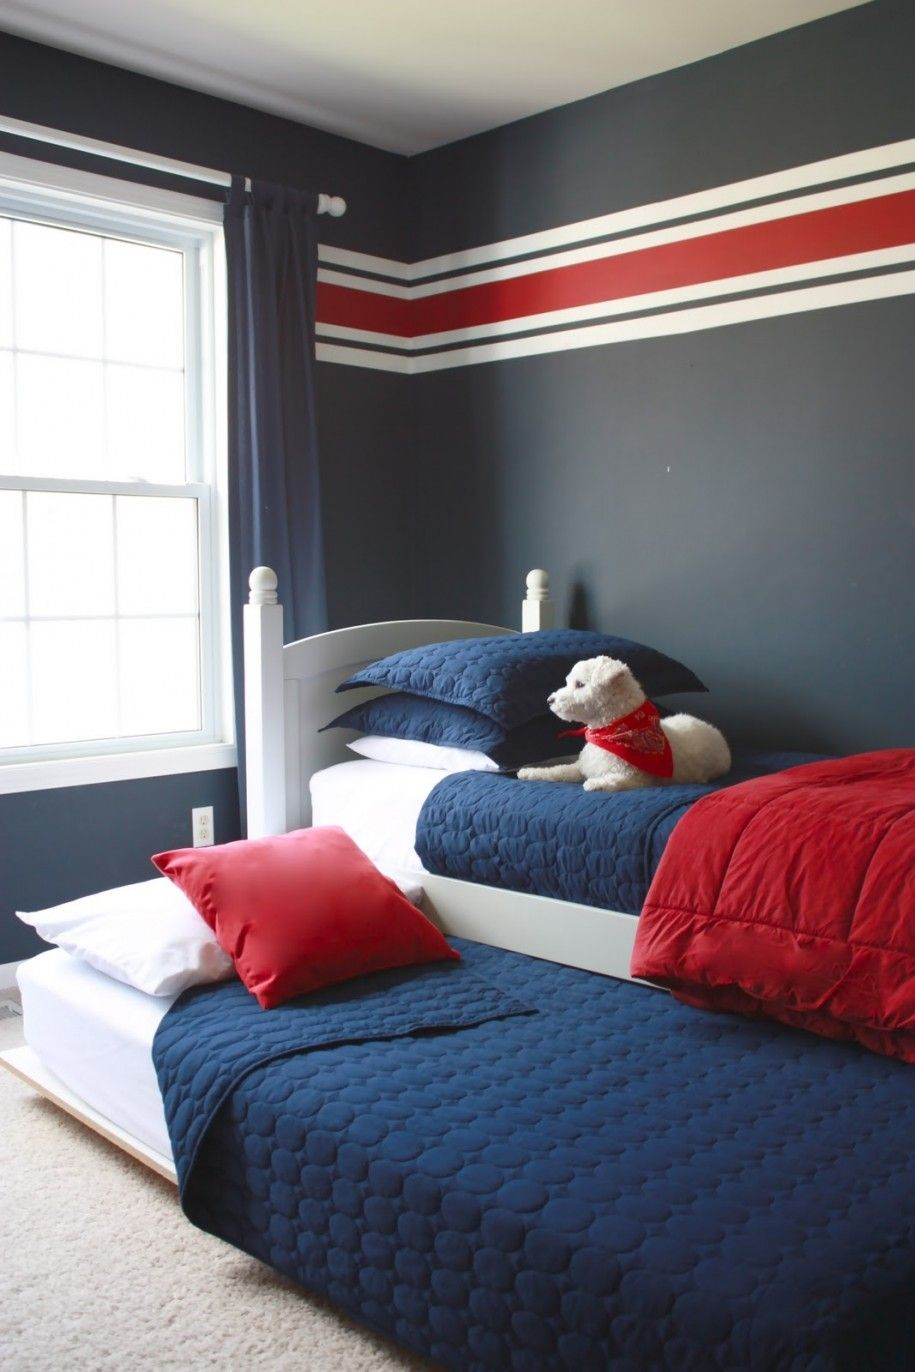 Bedroom With Striped Wall And Red Cushion Boyroom Interior Http Oohm